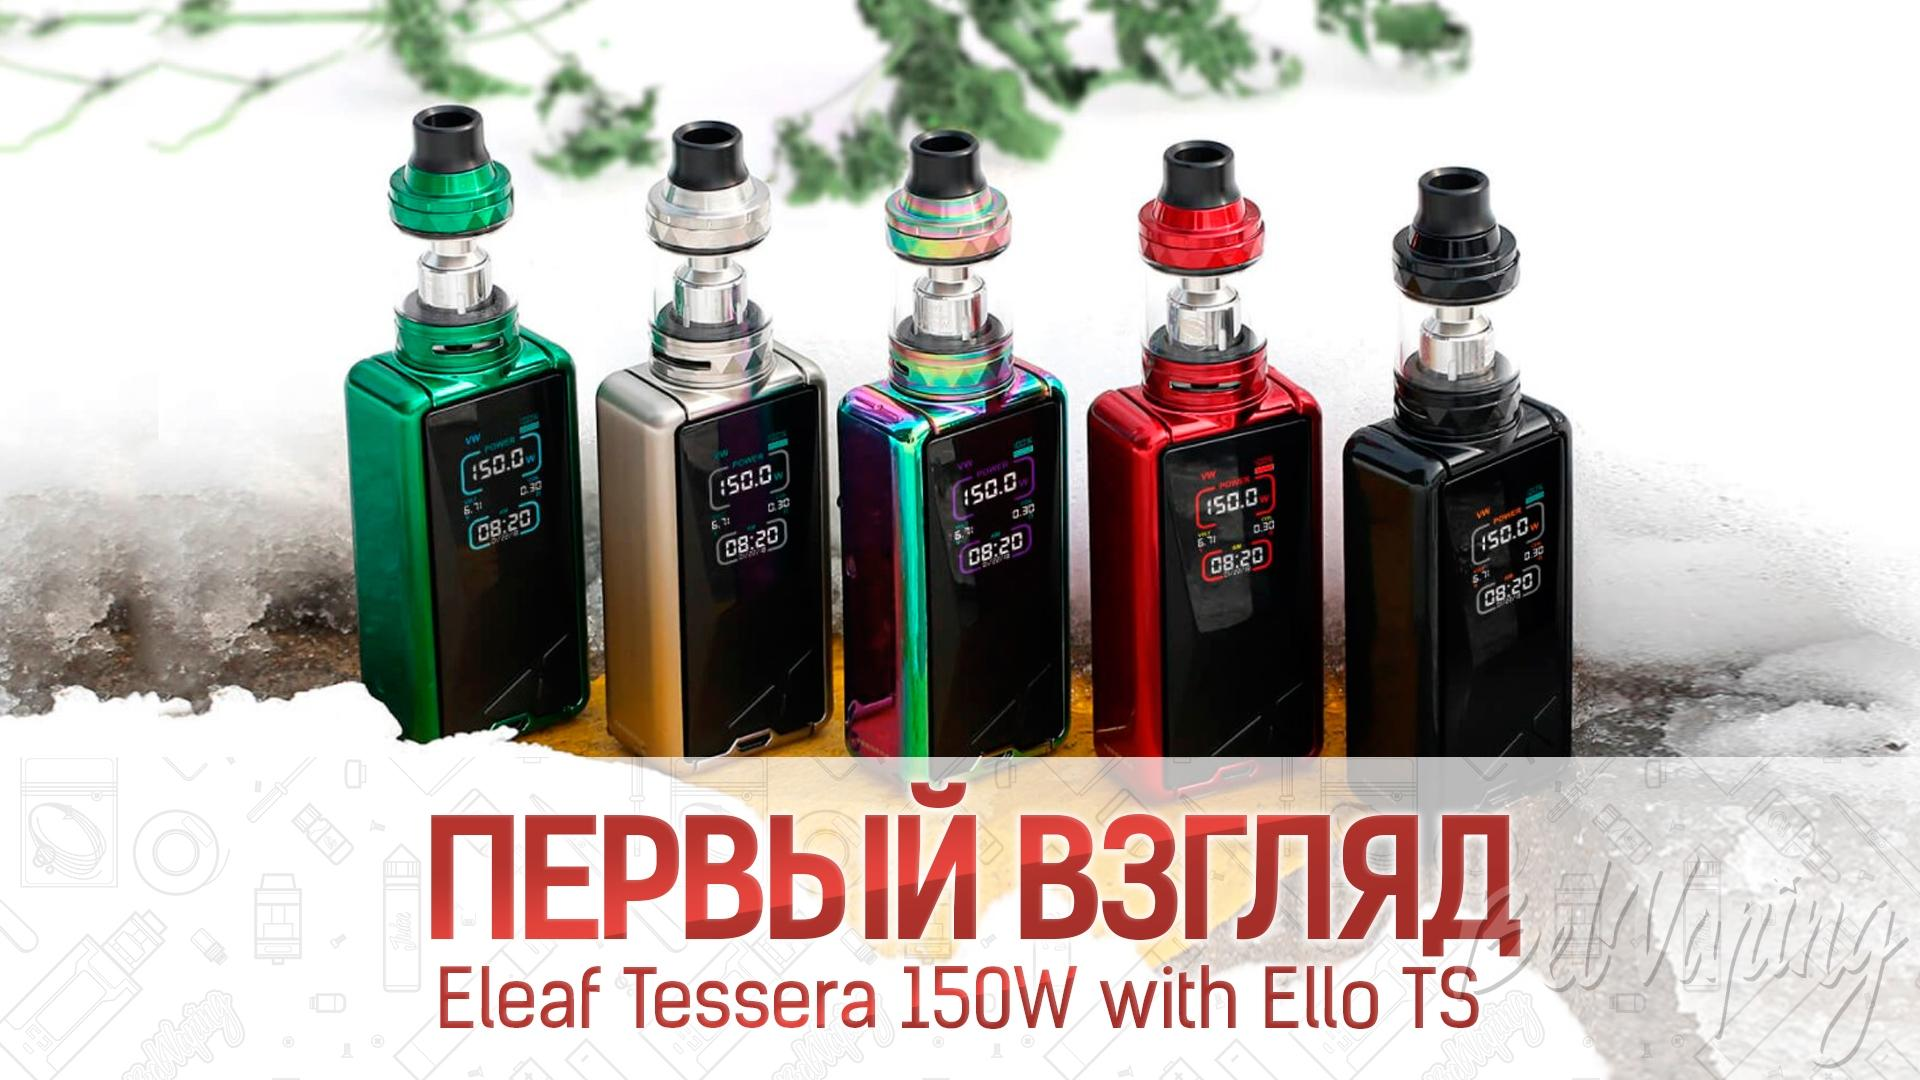 Eleaf Tessera 150W with Ello TS. Первый взгляд